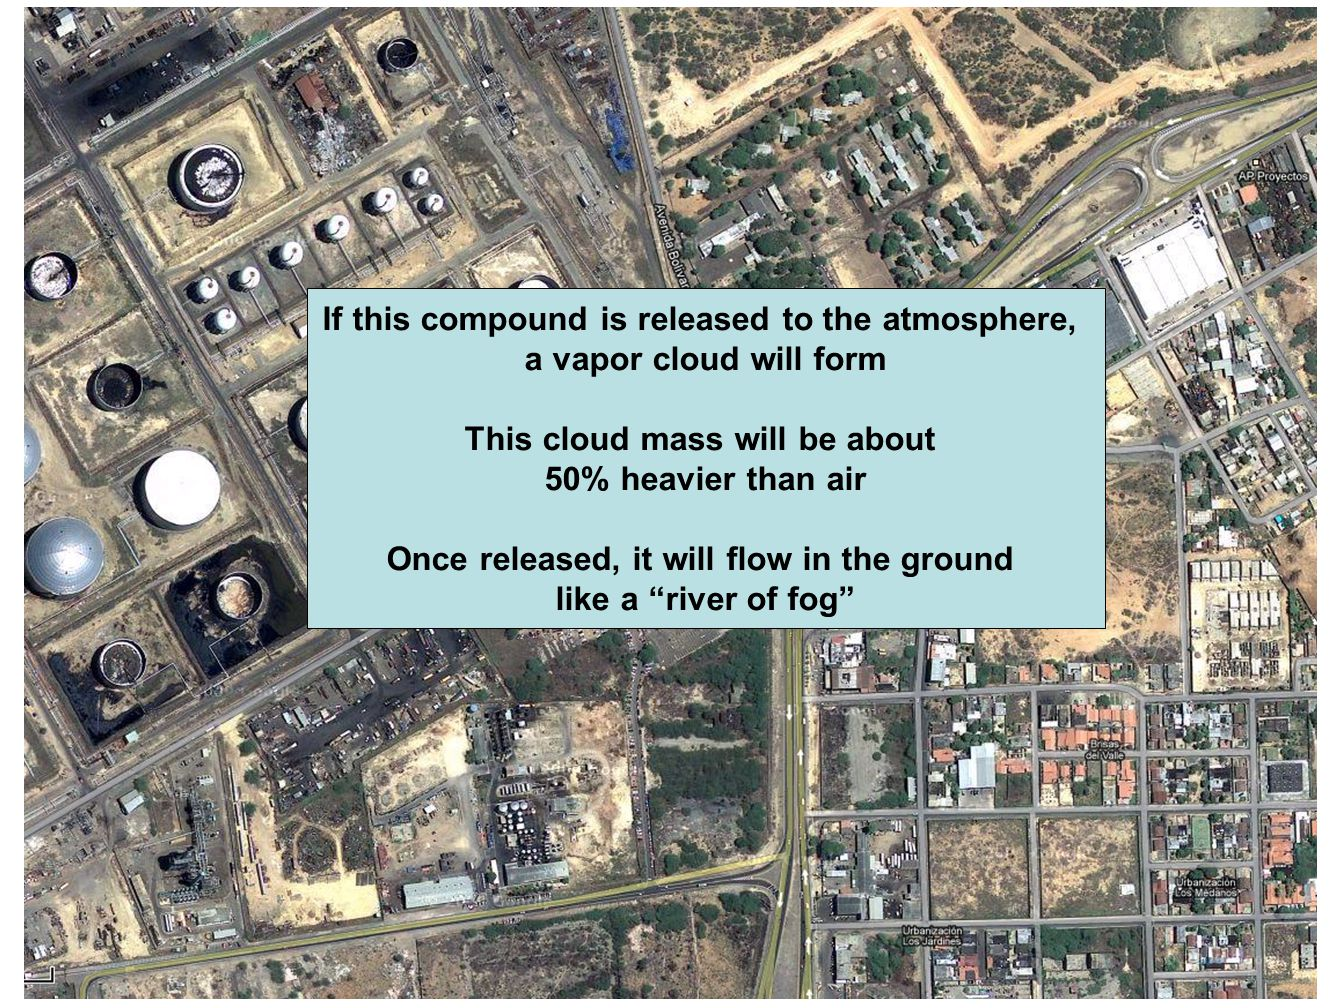 If this compound is released to the atmosphere, a vapor cloud will form This cloud mass will be about 50% heavier than air Once released, it will flow